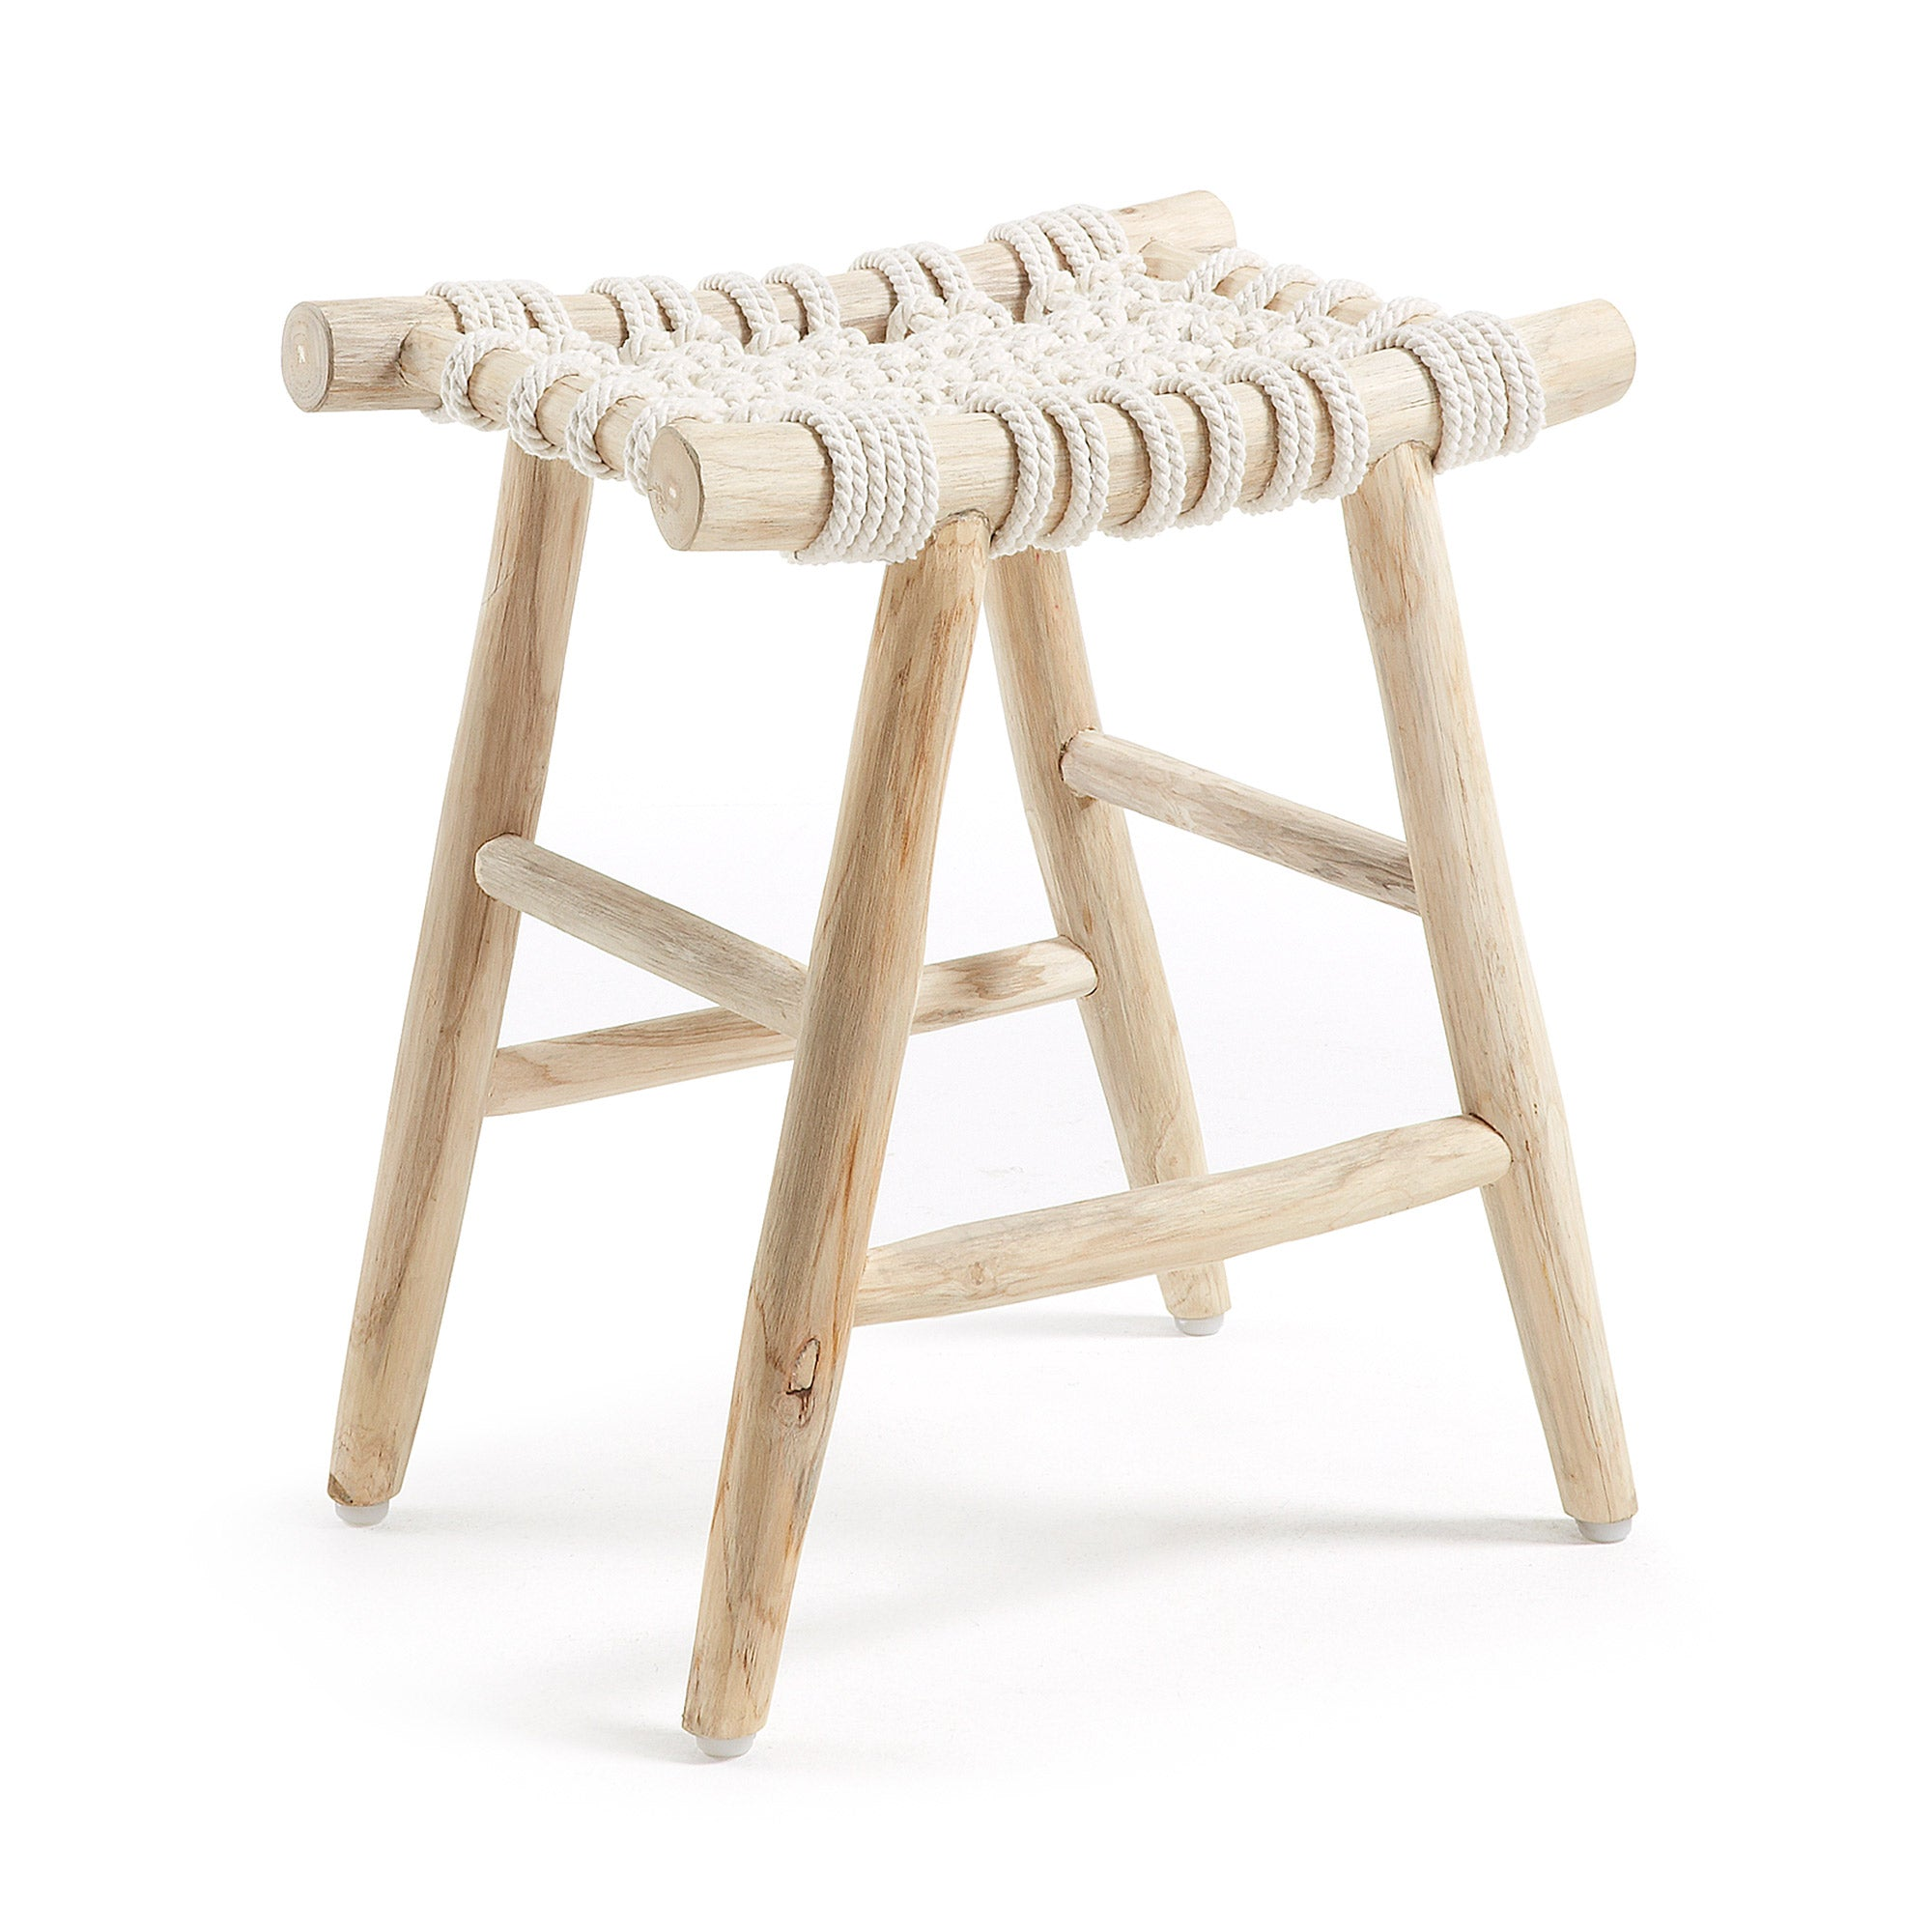 Eclectic Footrest teak wood cotton rope white - CC0441J33, Accessory - Home-Buy Interiors